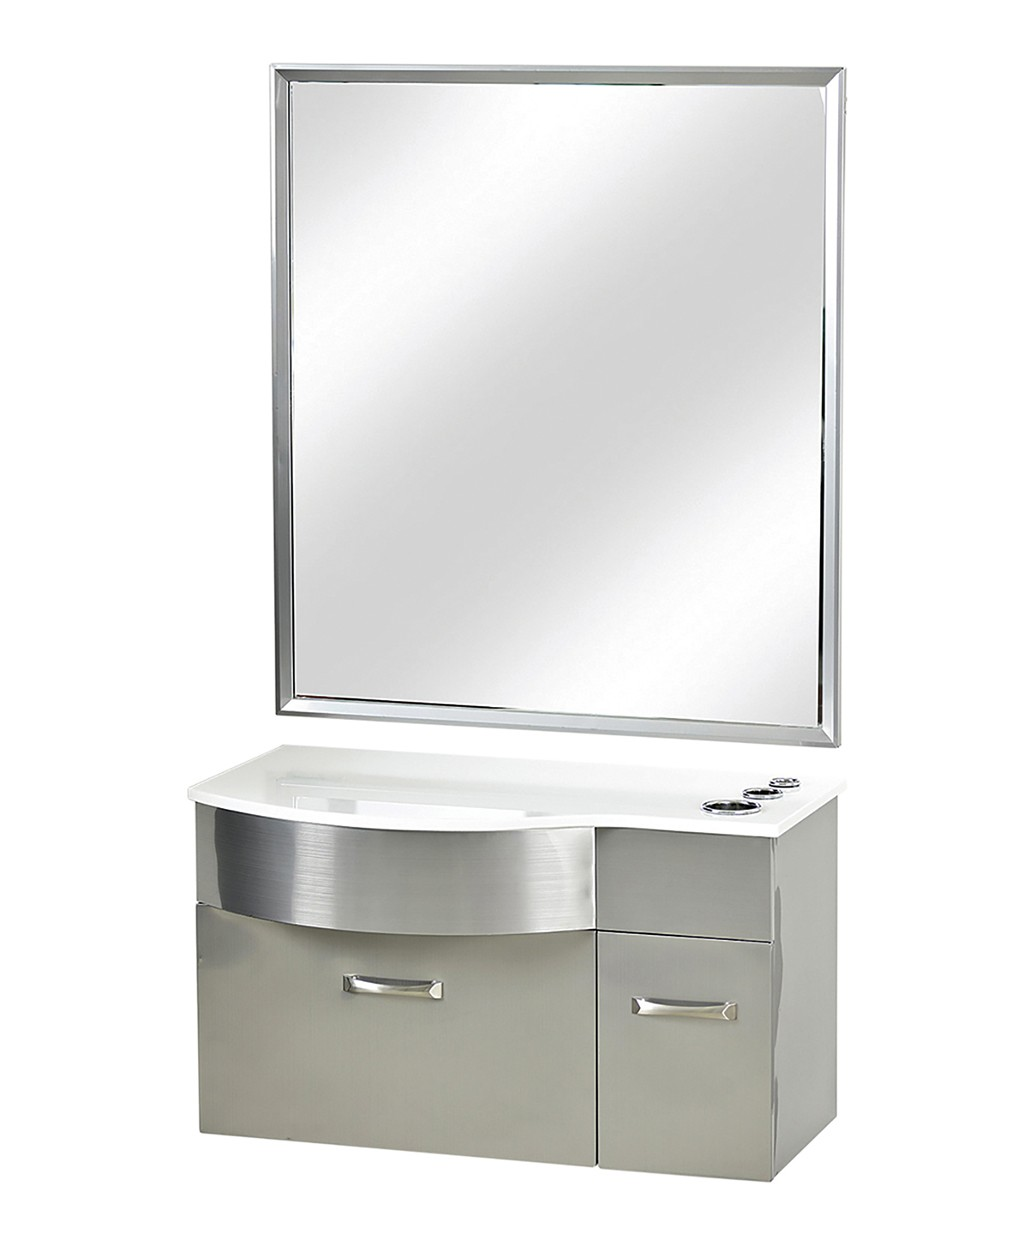 Pibbs PB52W Stainless Steel Styling Station w/ Mirror